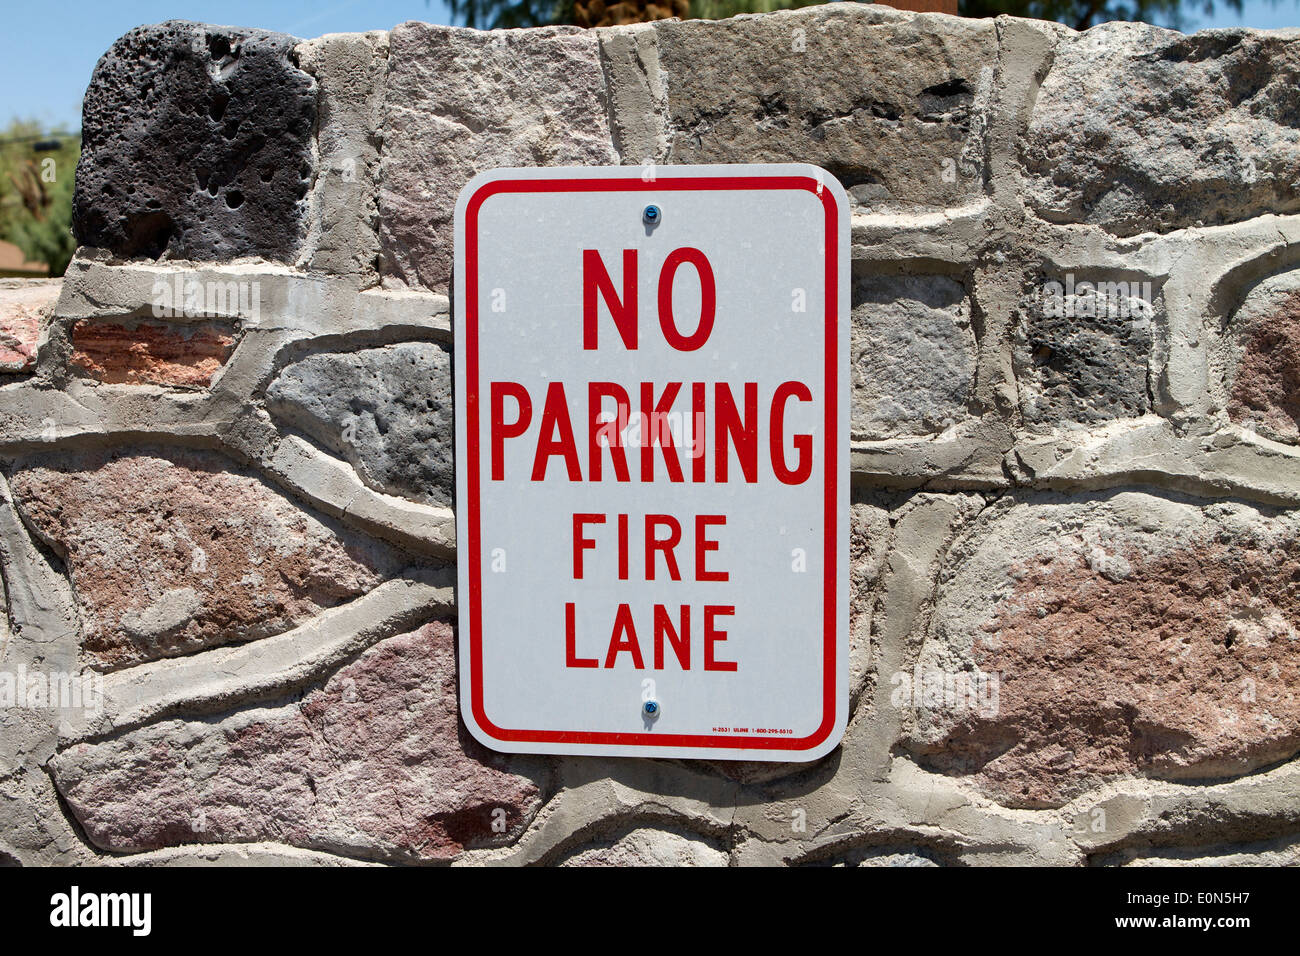 No Parking Fire Lane sign on a natural stonewall - Stock Image